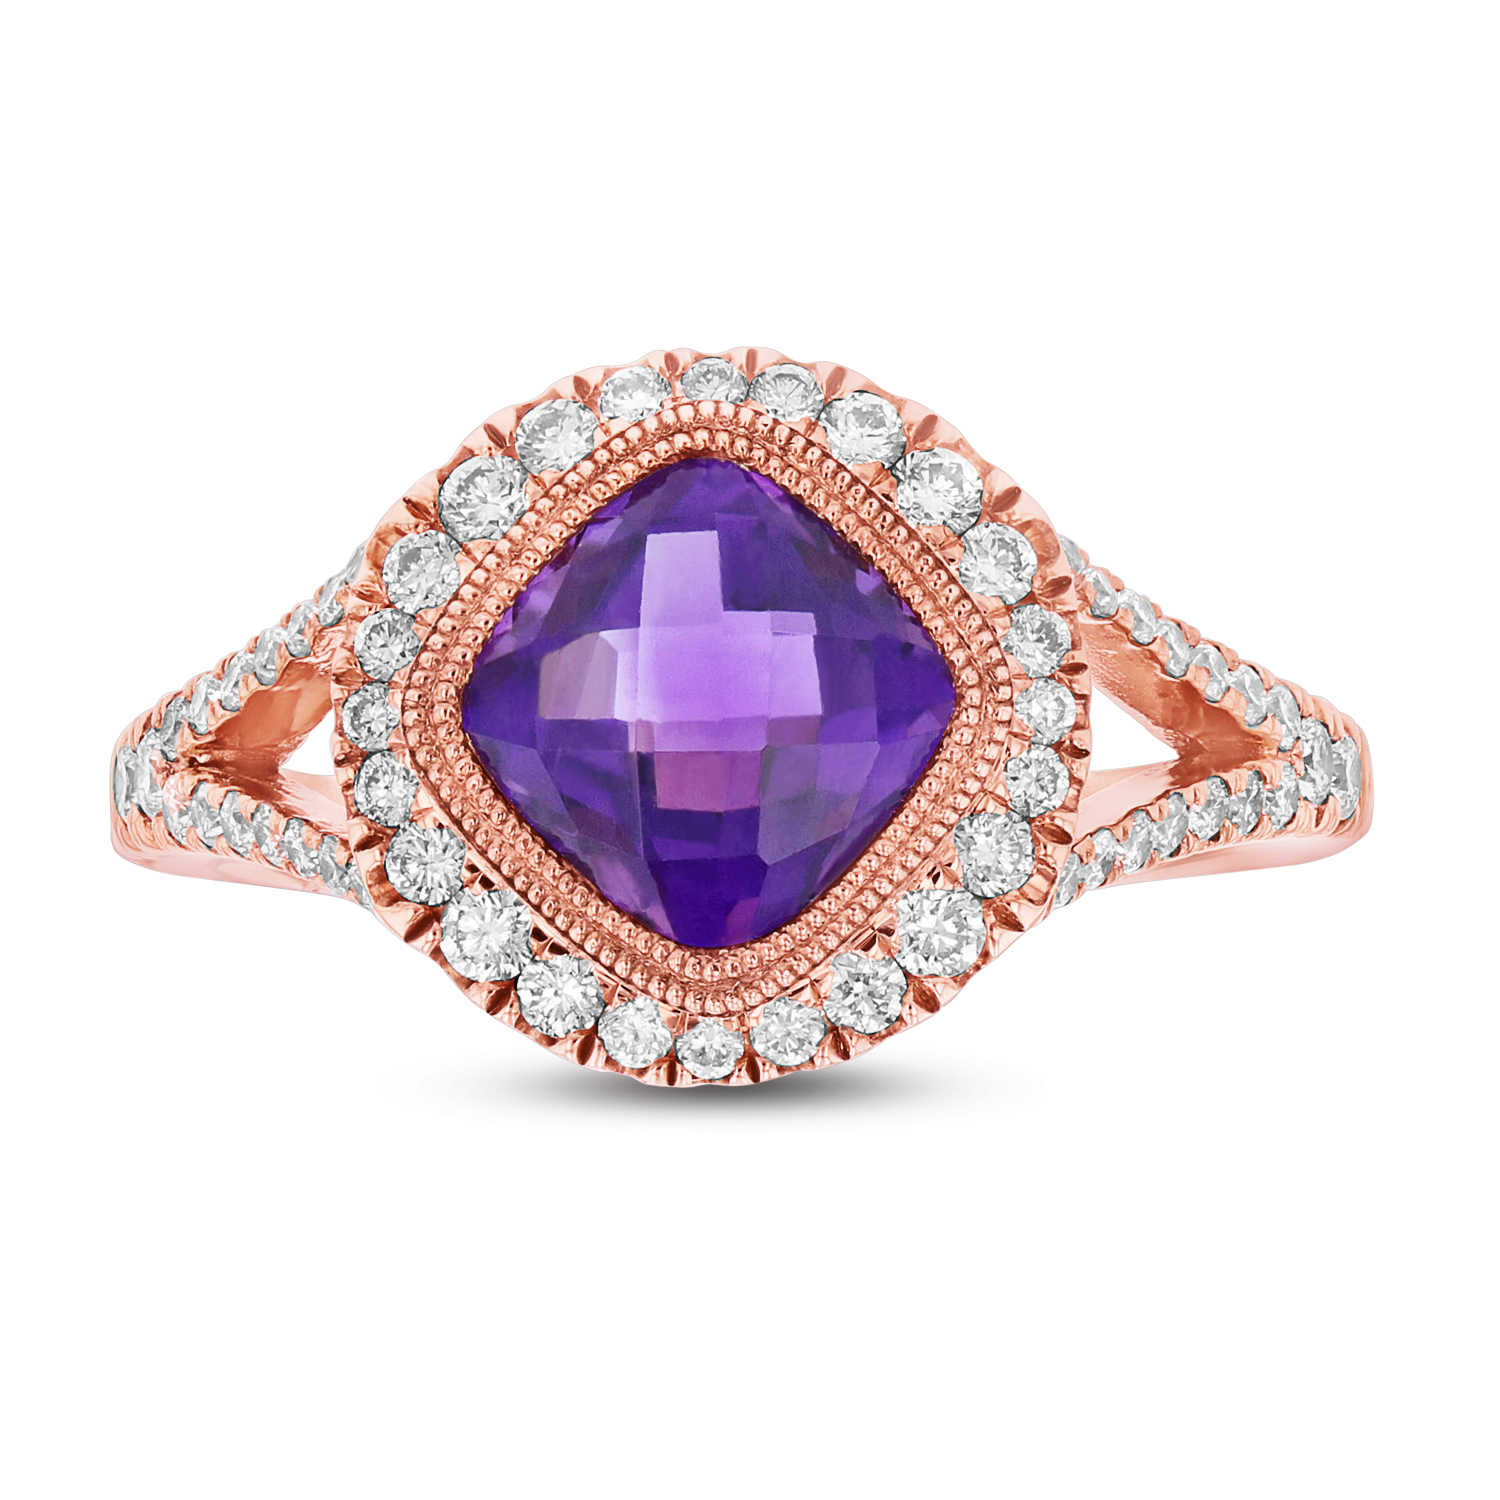 View Diamond and Amethyst ring in 14k Rose Gold